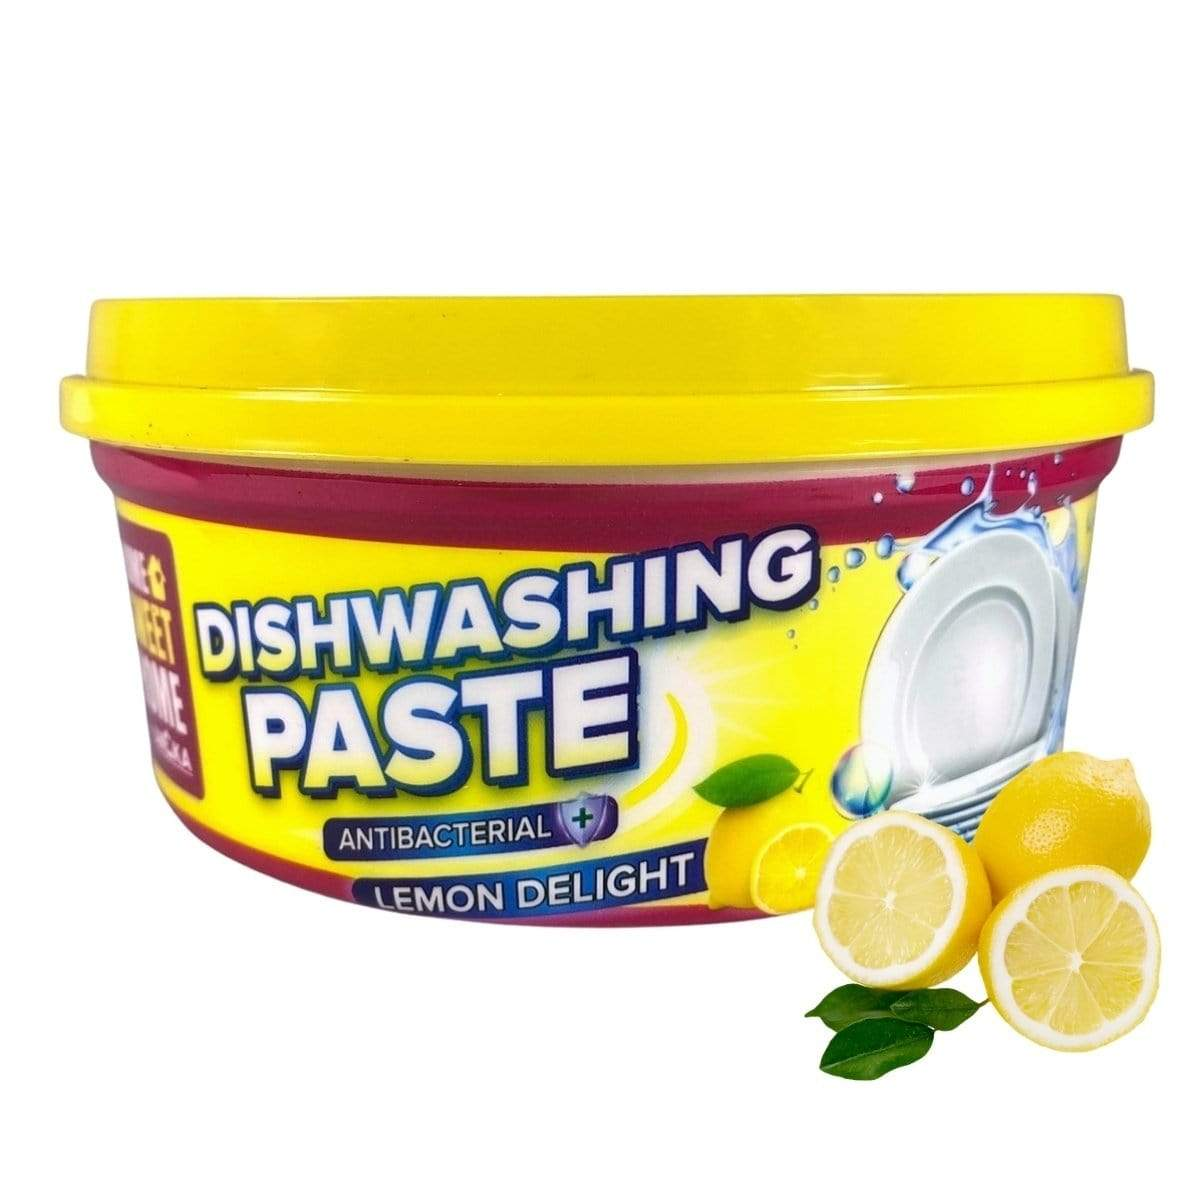 Home Sweet Home Dishwashing Paste 400g Lemon